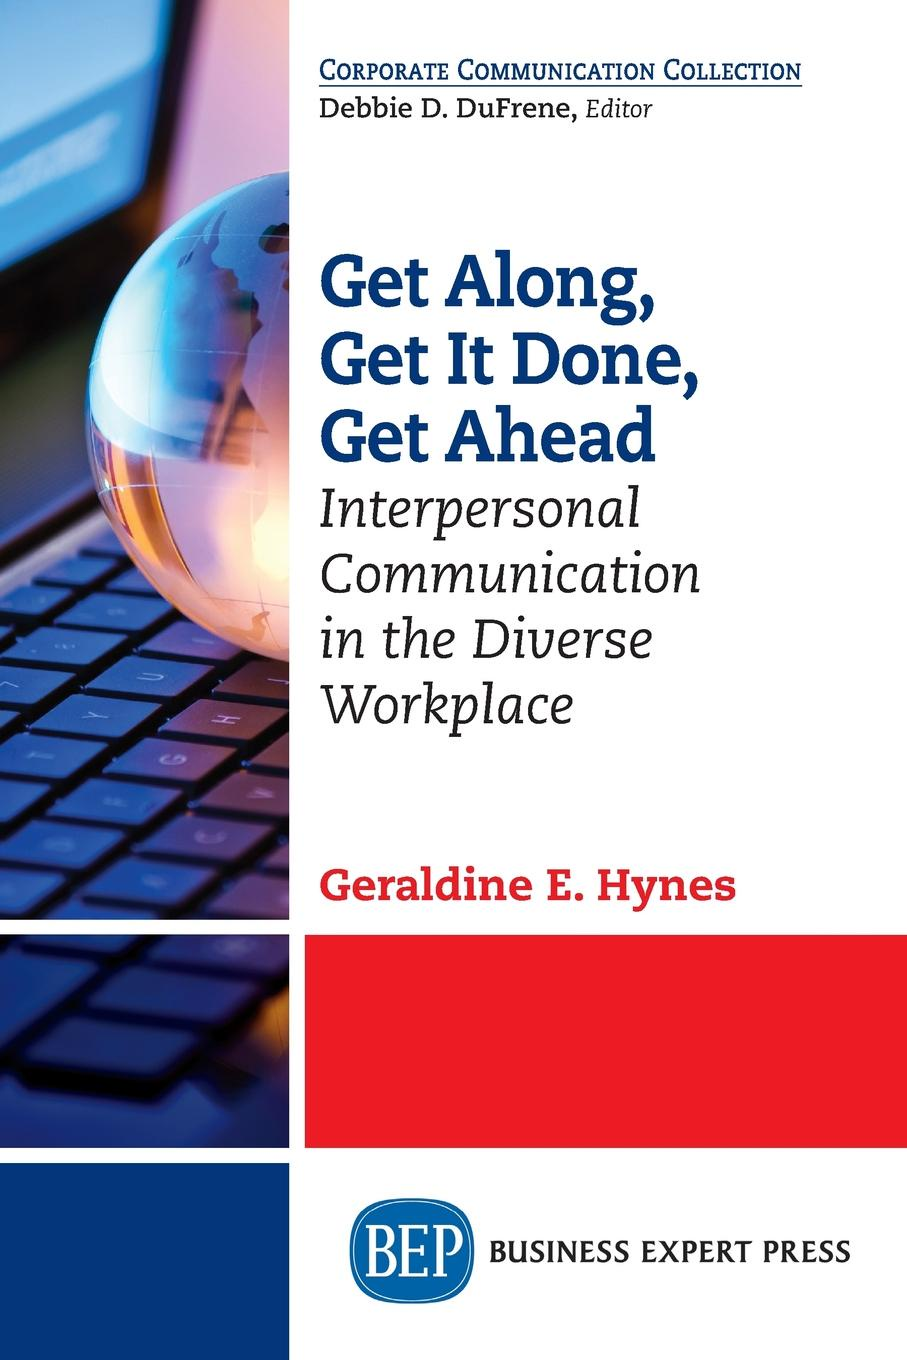 Geraldine E. Hynes Get Along, Get It Done, Get Ahead. Interpersonal Communication in the Diverse Workplace how to get ahead in business with office cat